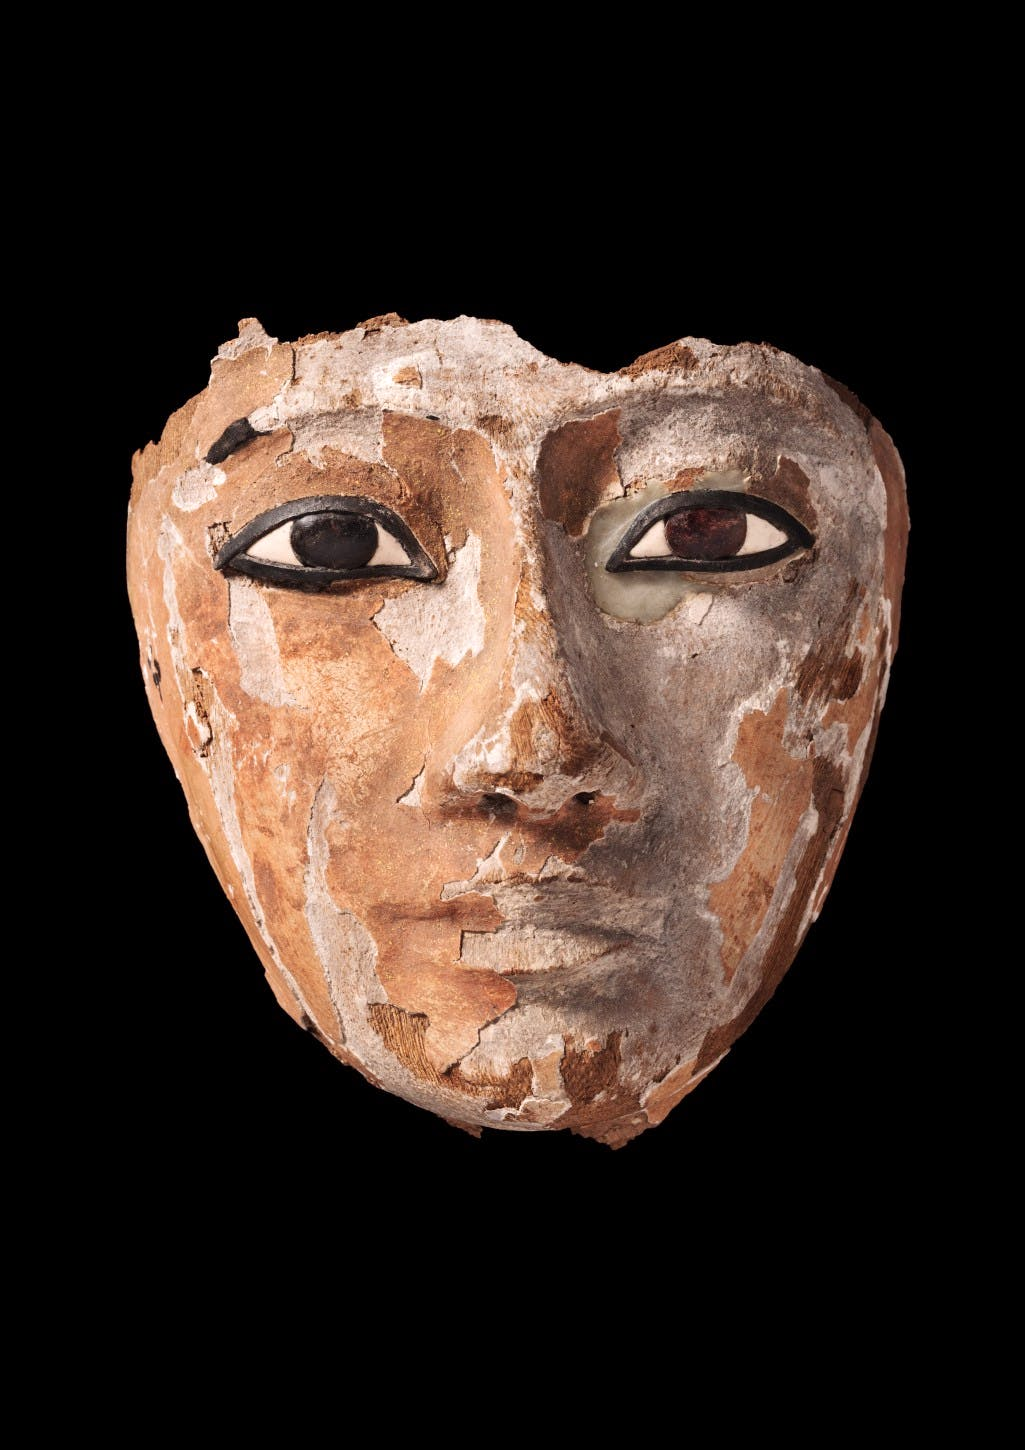 Wooden face with inlaid eyes, originally part of a coffin, Egyptian, 22nd Dynasty, Third Intermediate Period, 945–735 BC